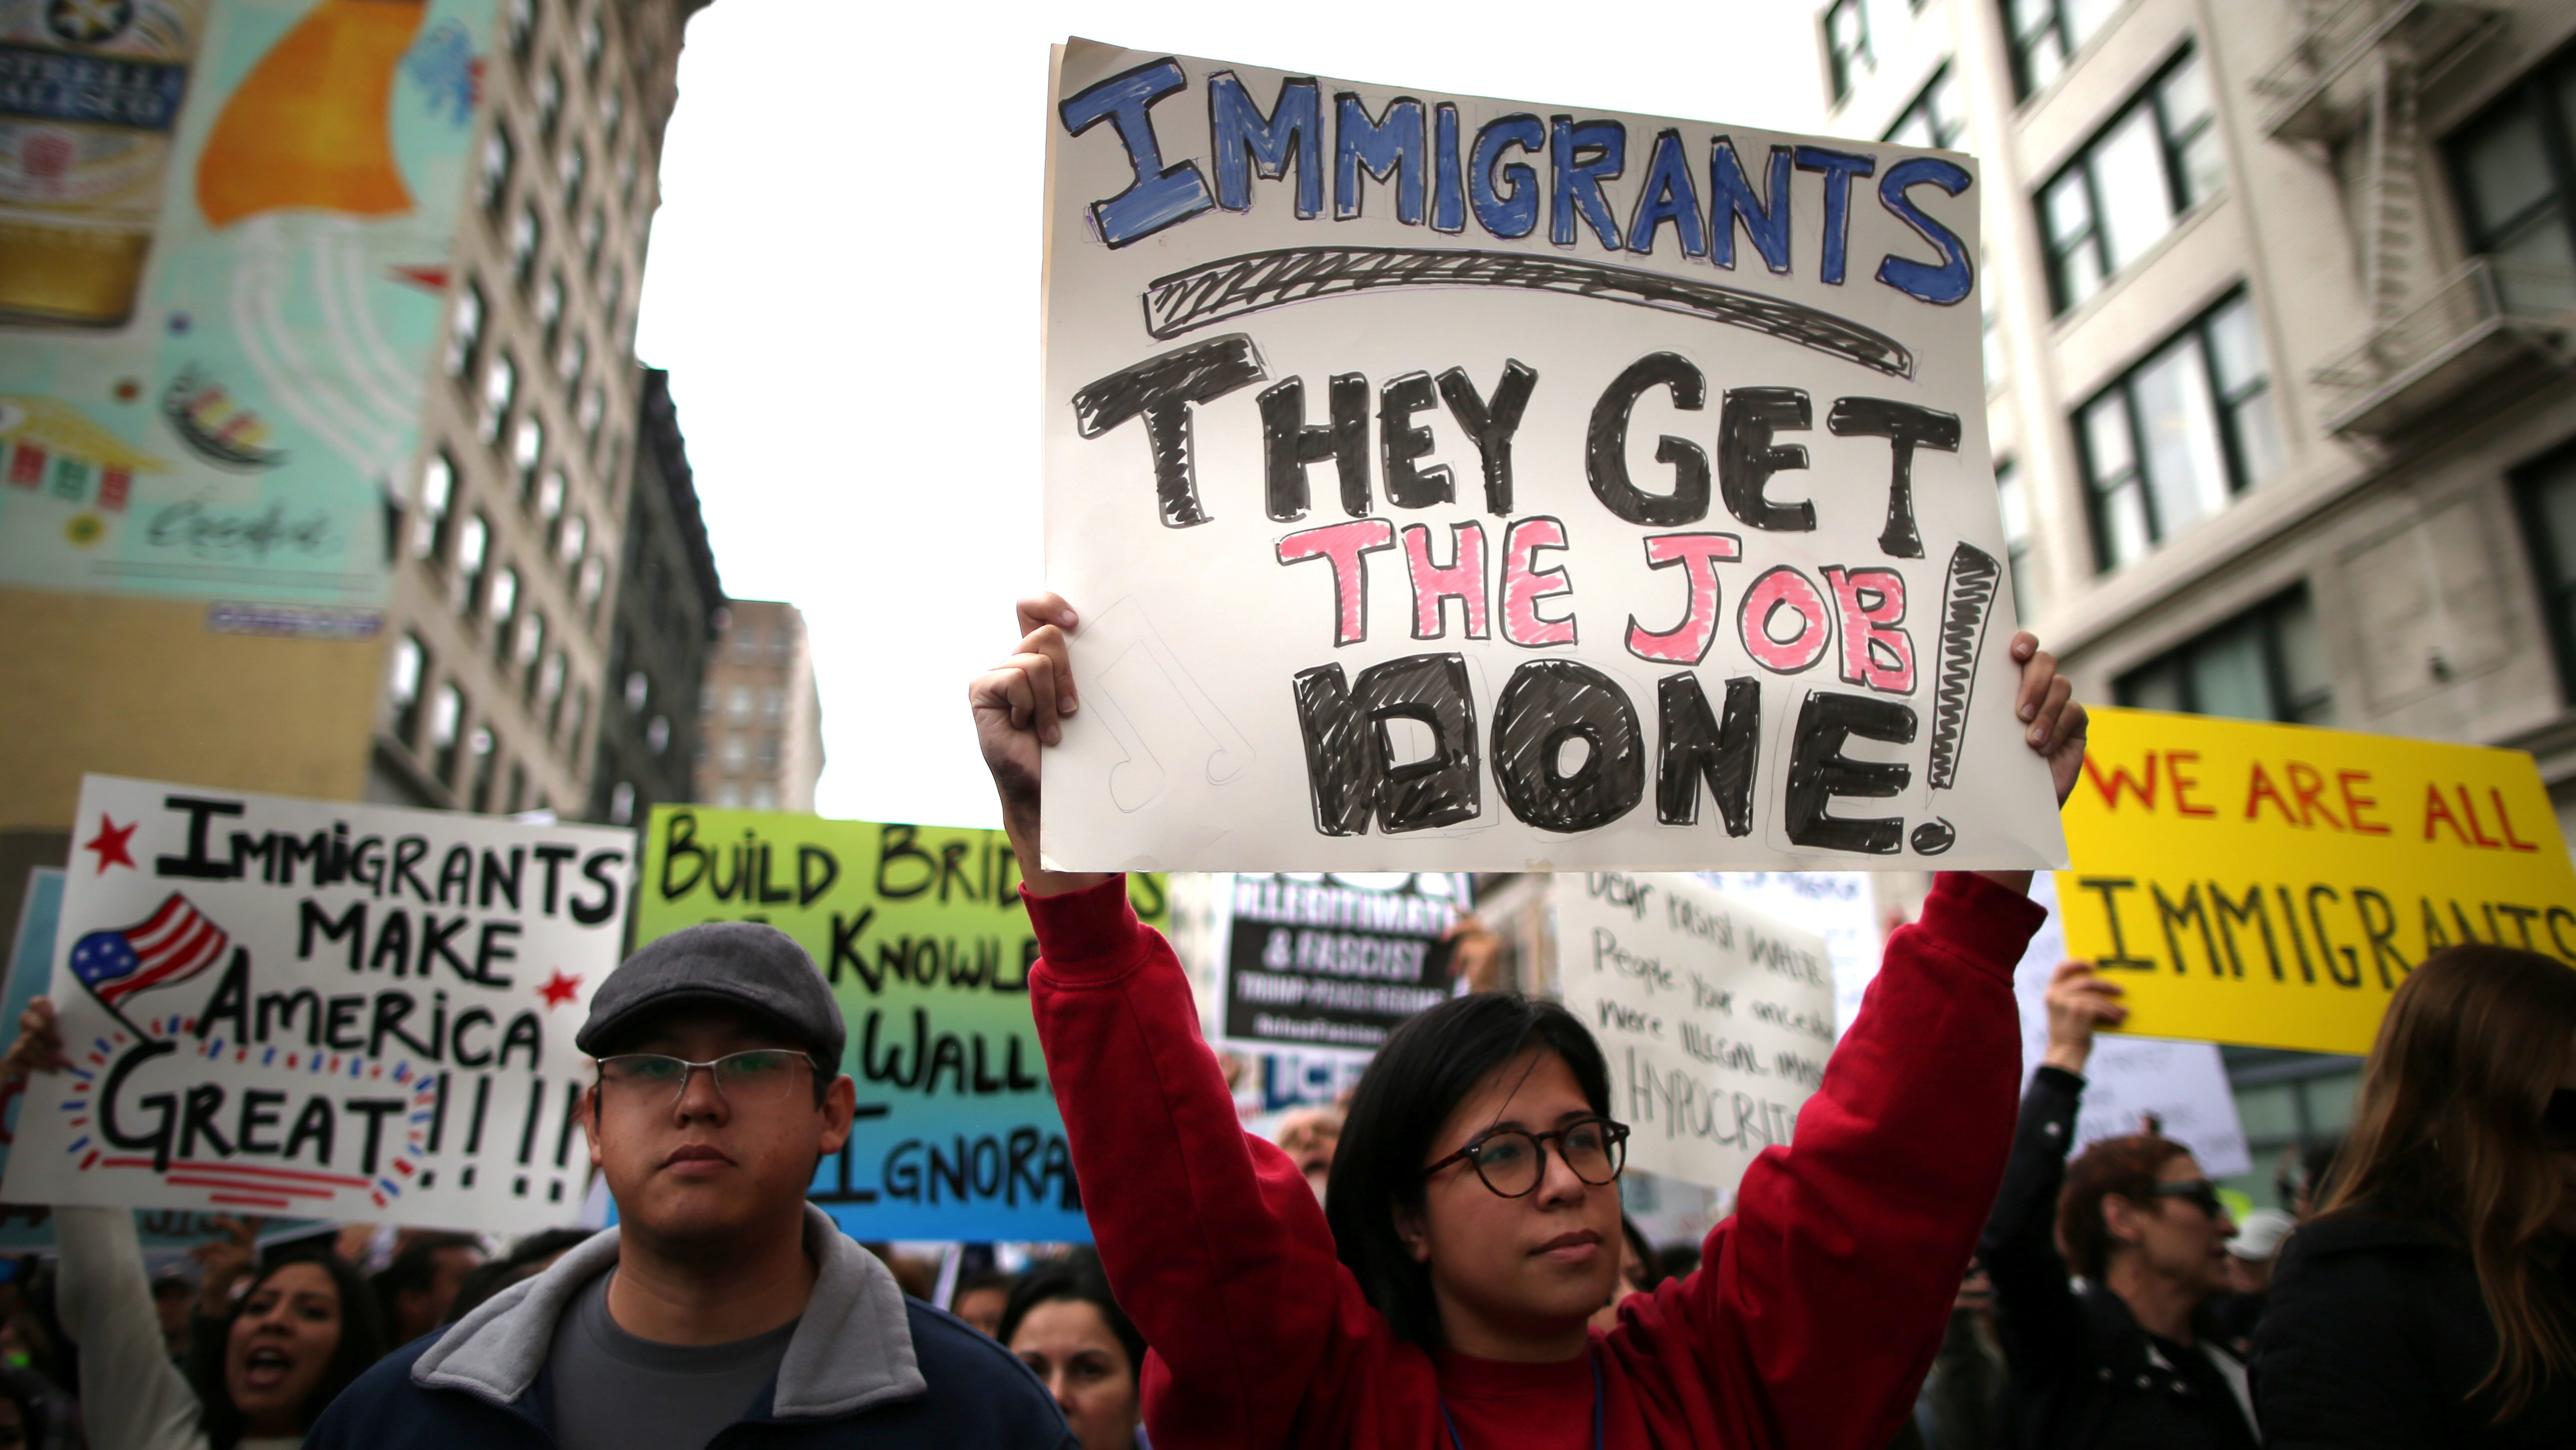 People participate in a protest march calling for human rights and dignity for immigrants